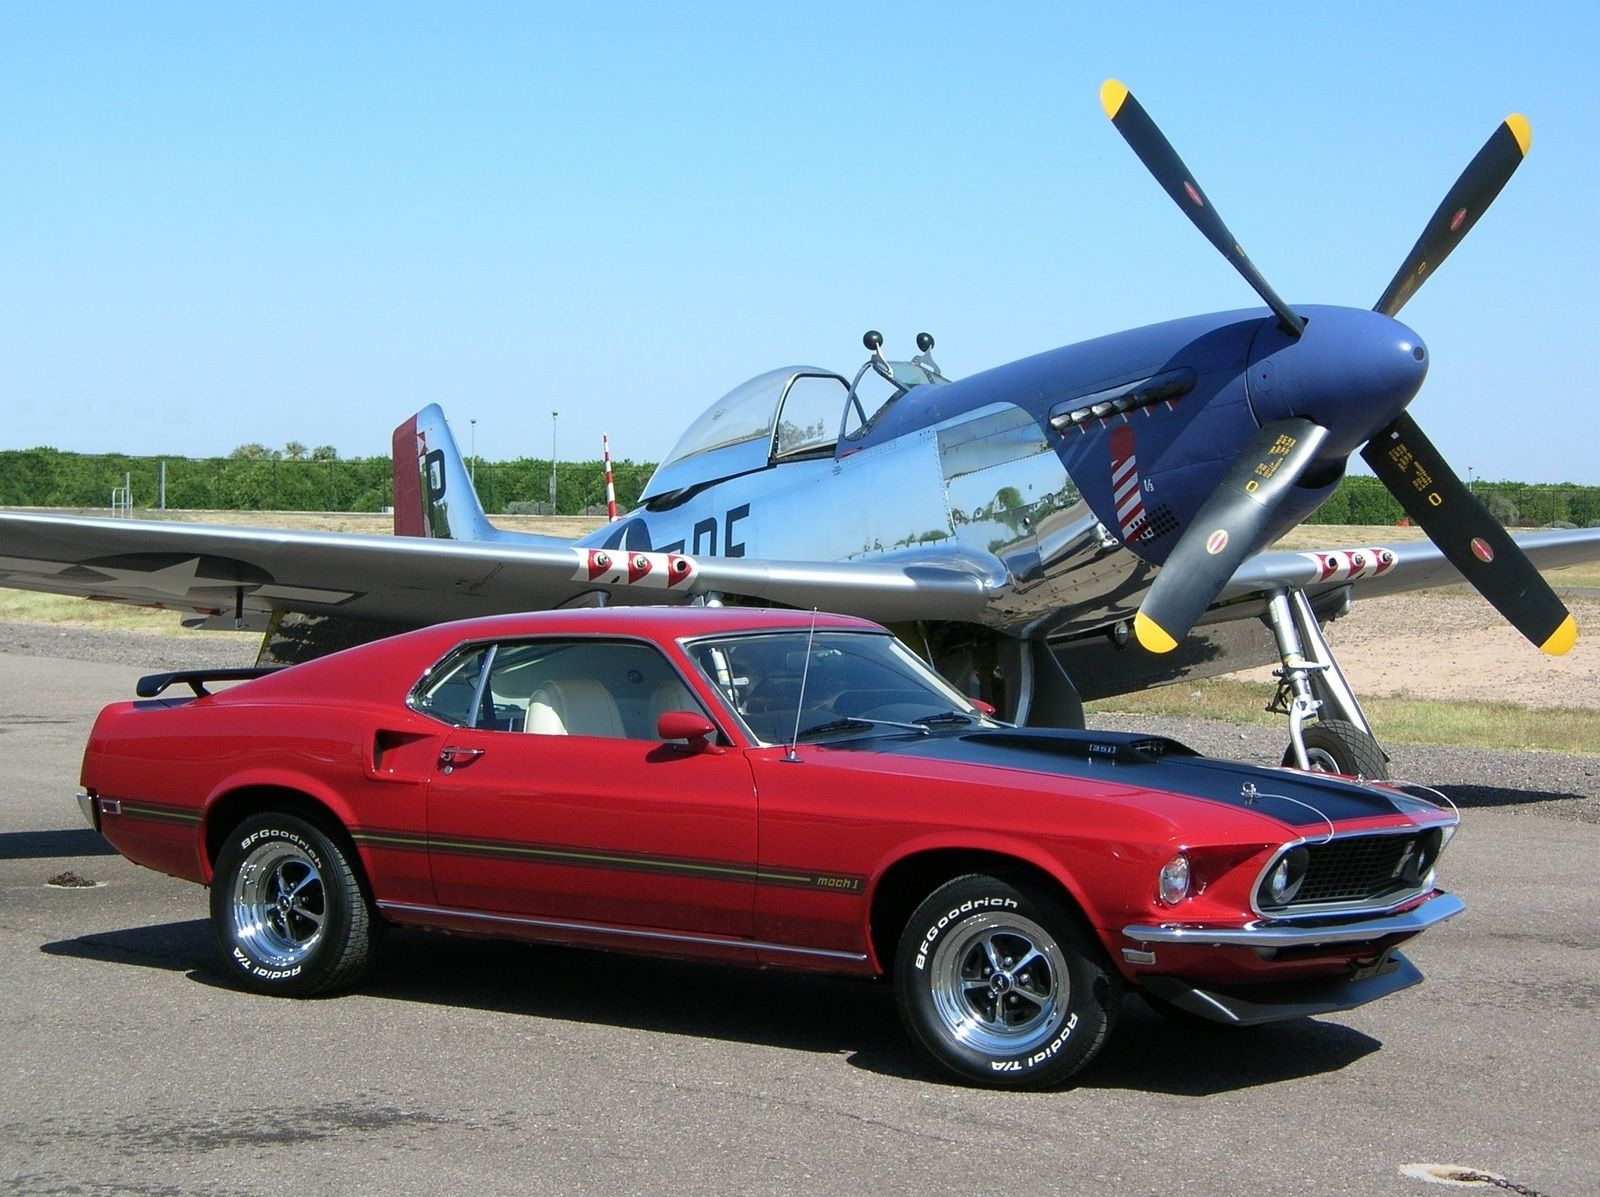 1969 Ford Mustang Mach 1 Ford mustang, Mustang, Classic